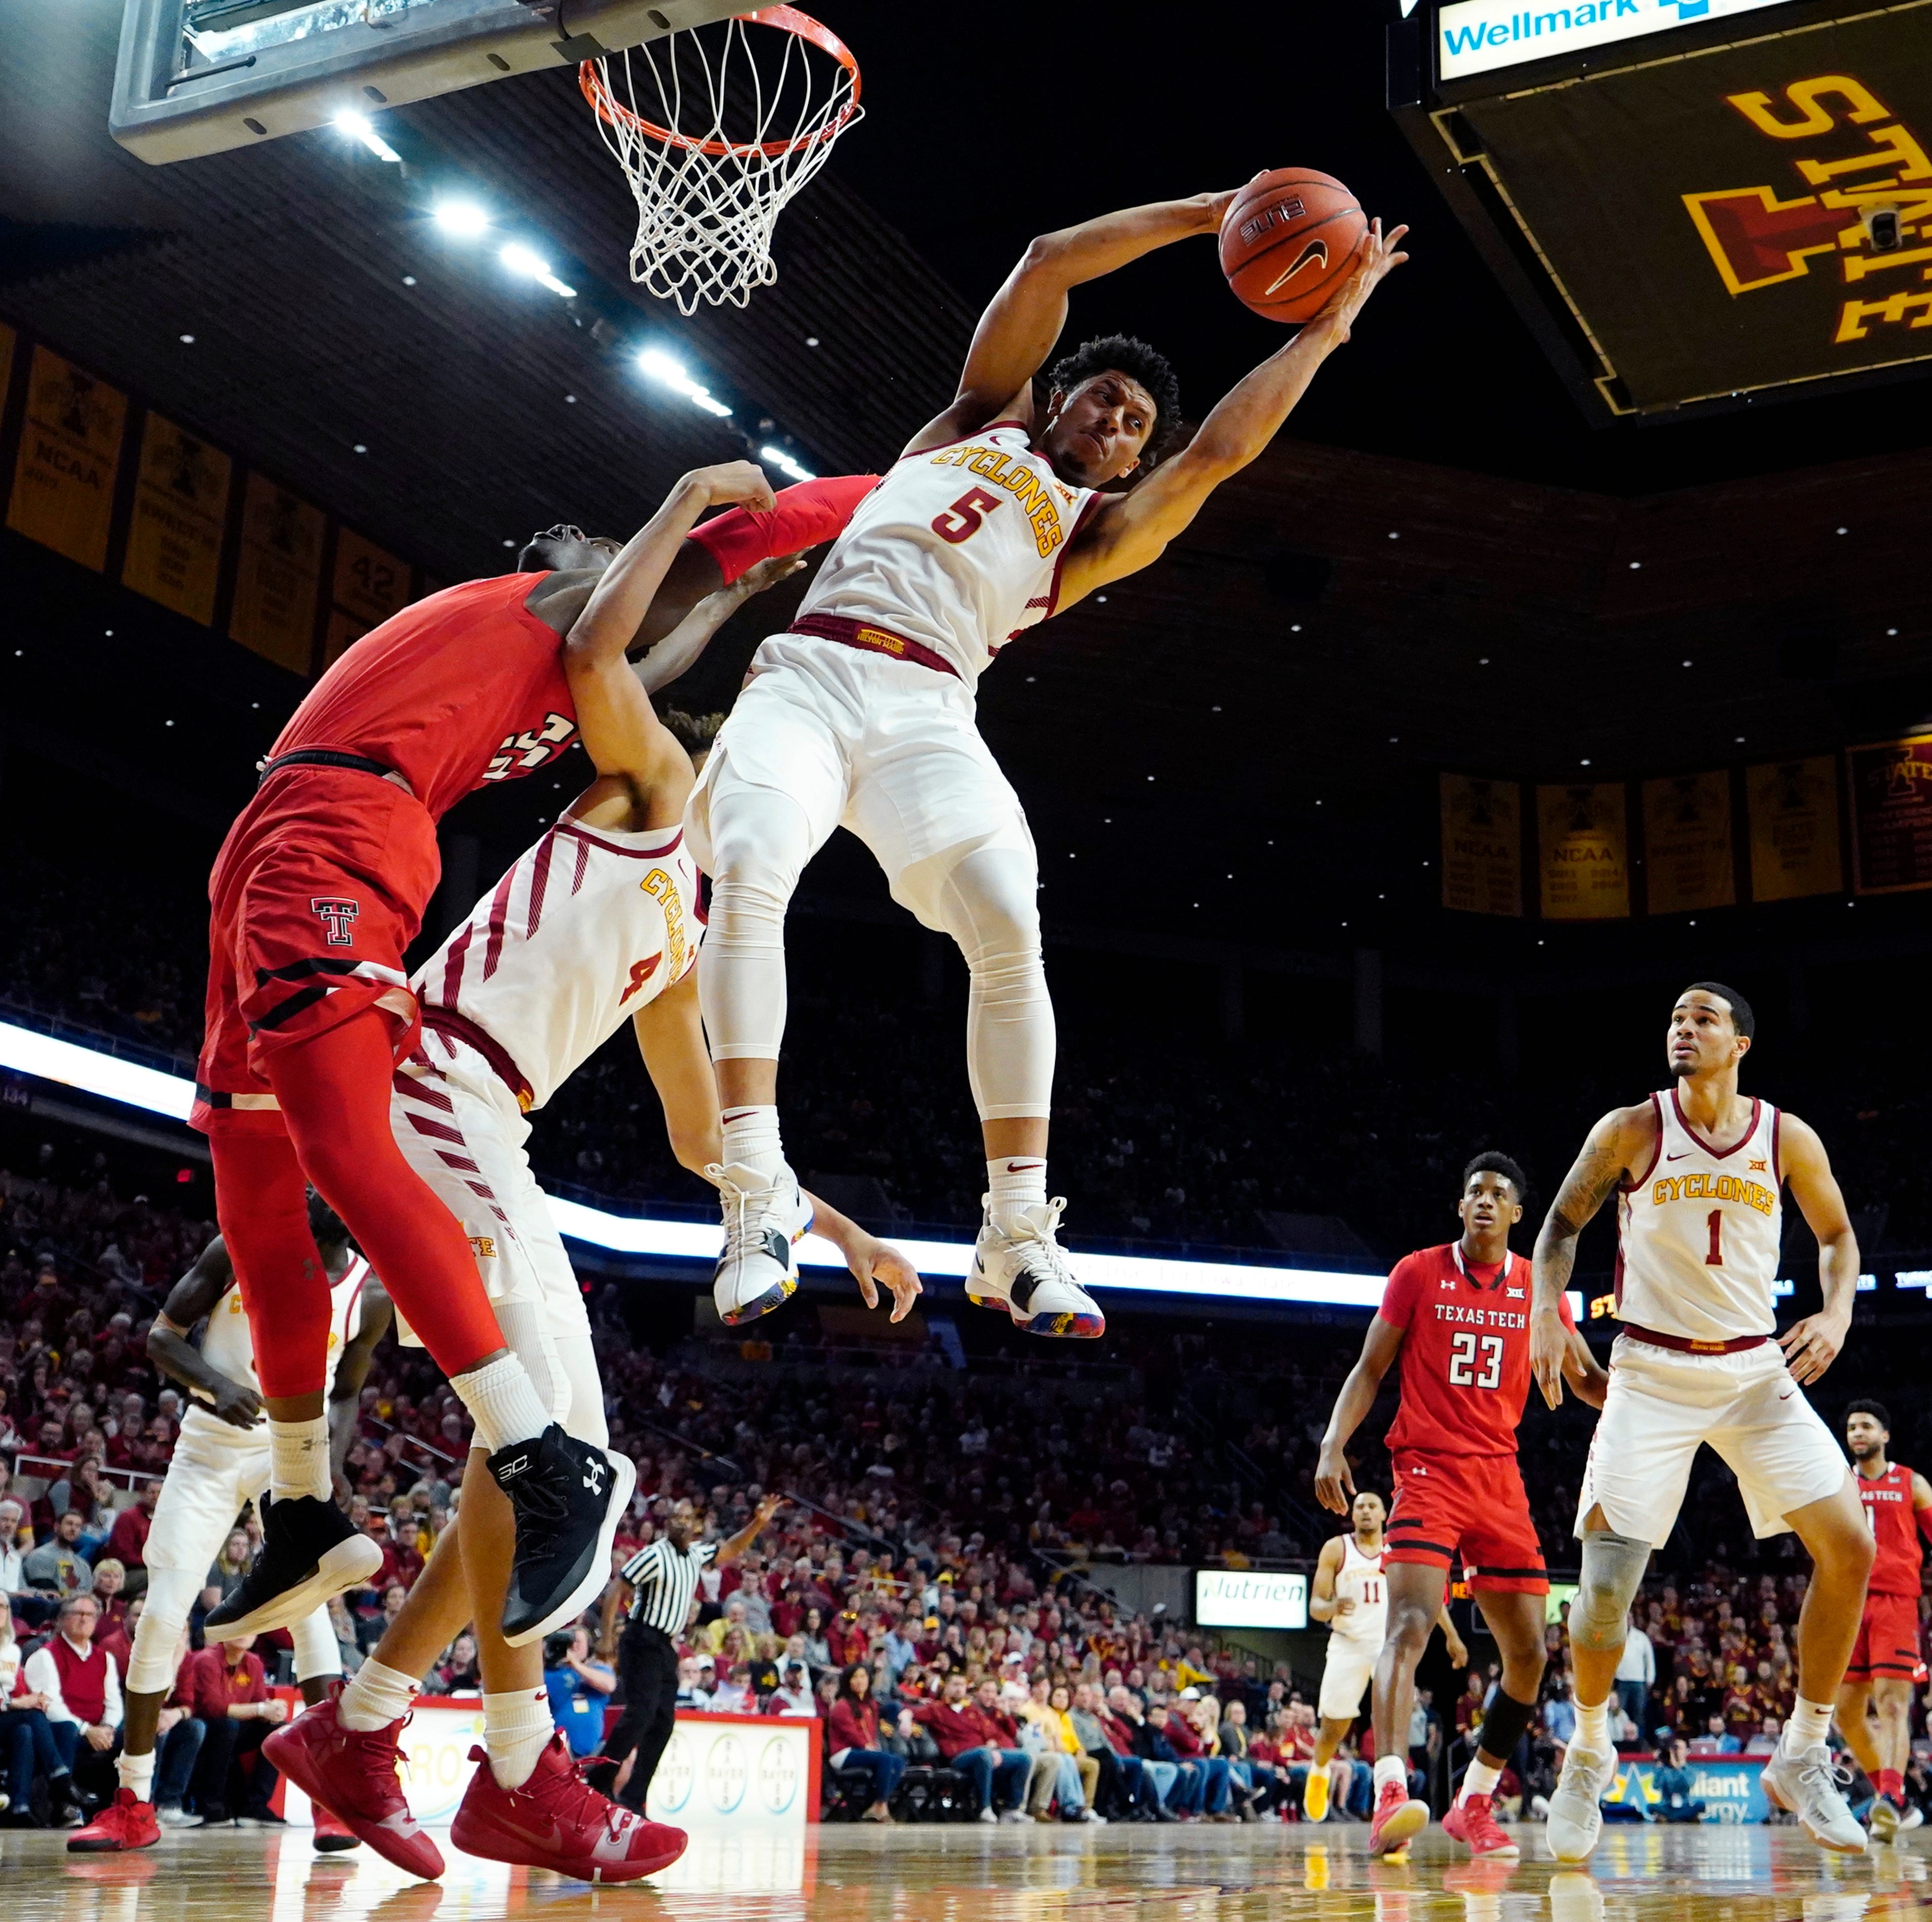 Peterson: Shayok is all-Big 12, Cyclones might have fallen to Des Moines Regional 7-seed